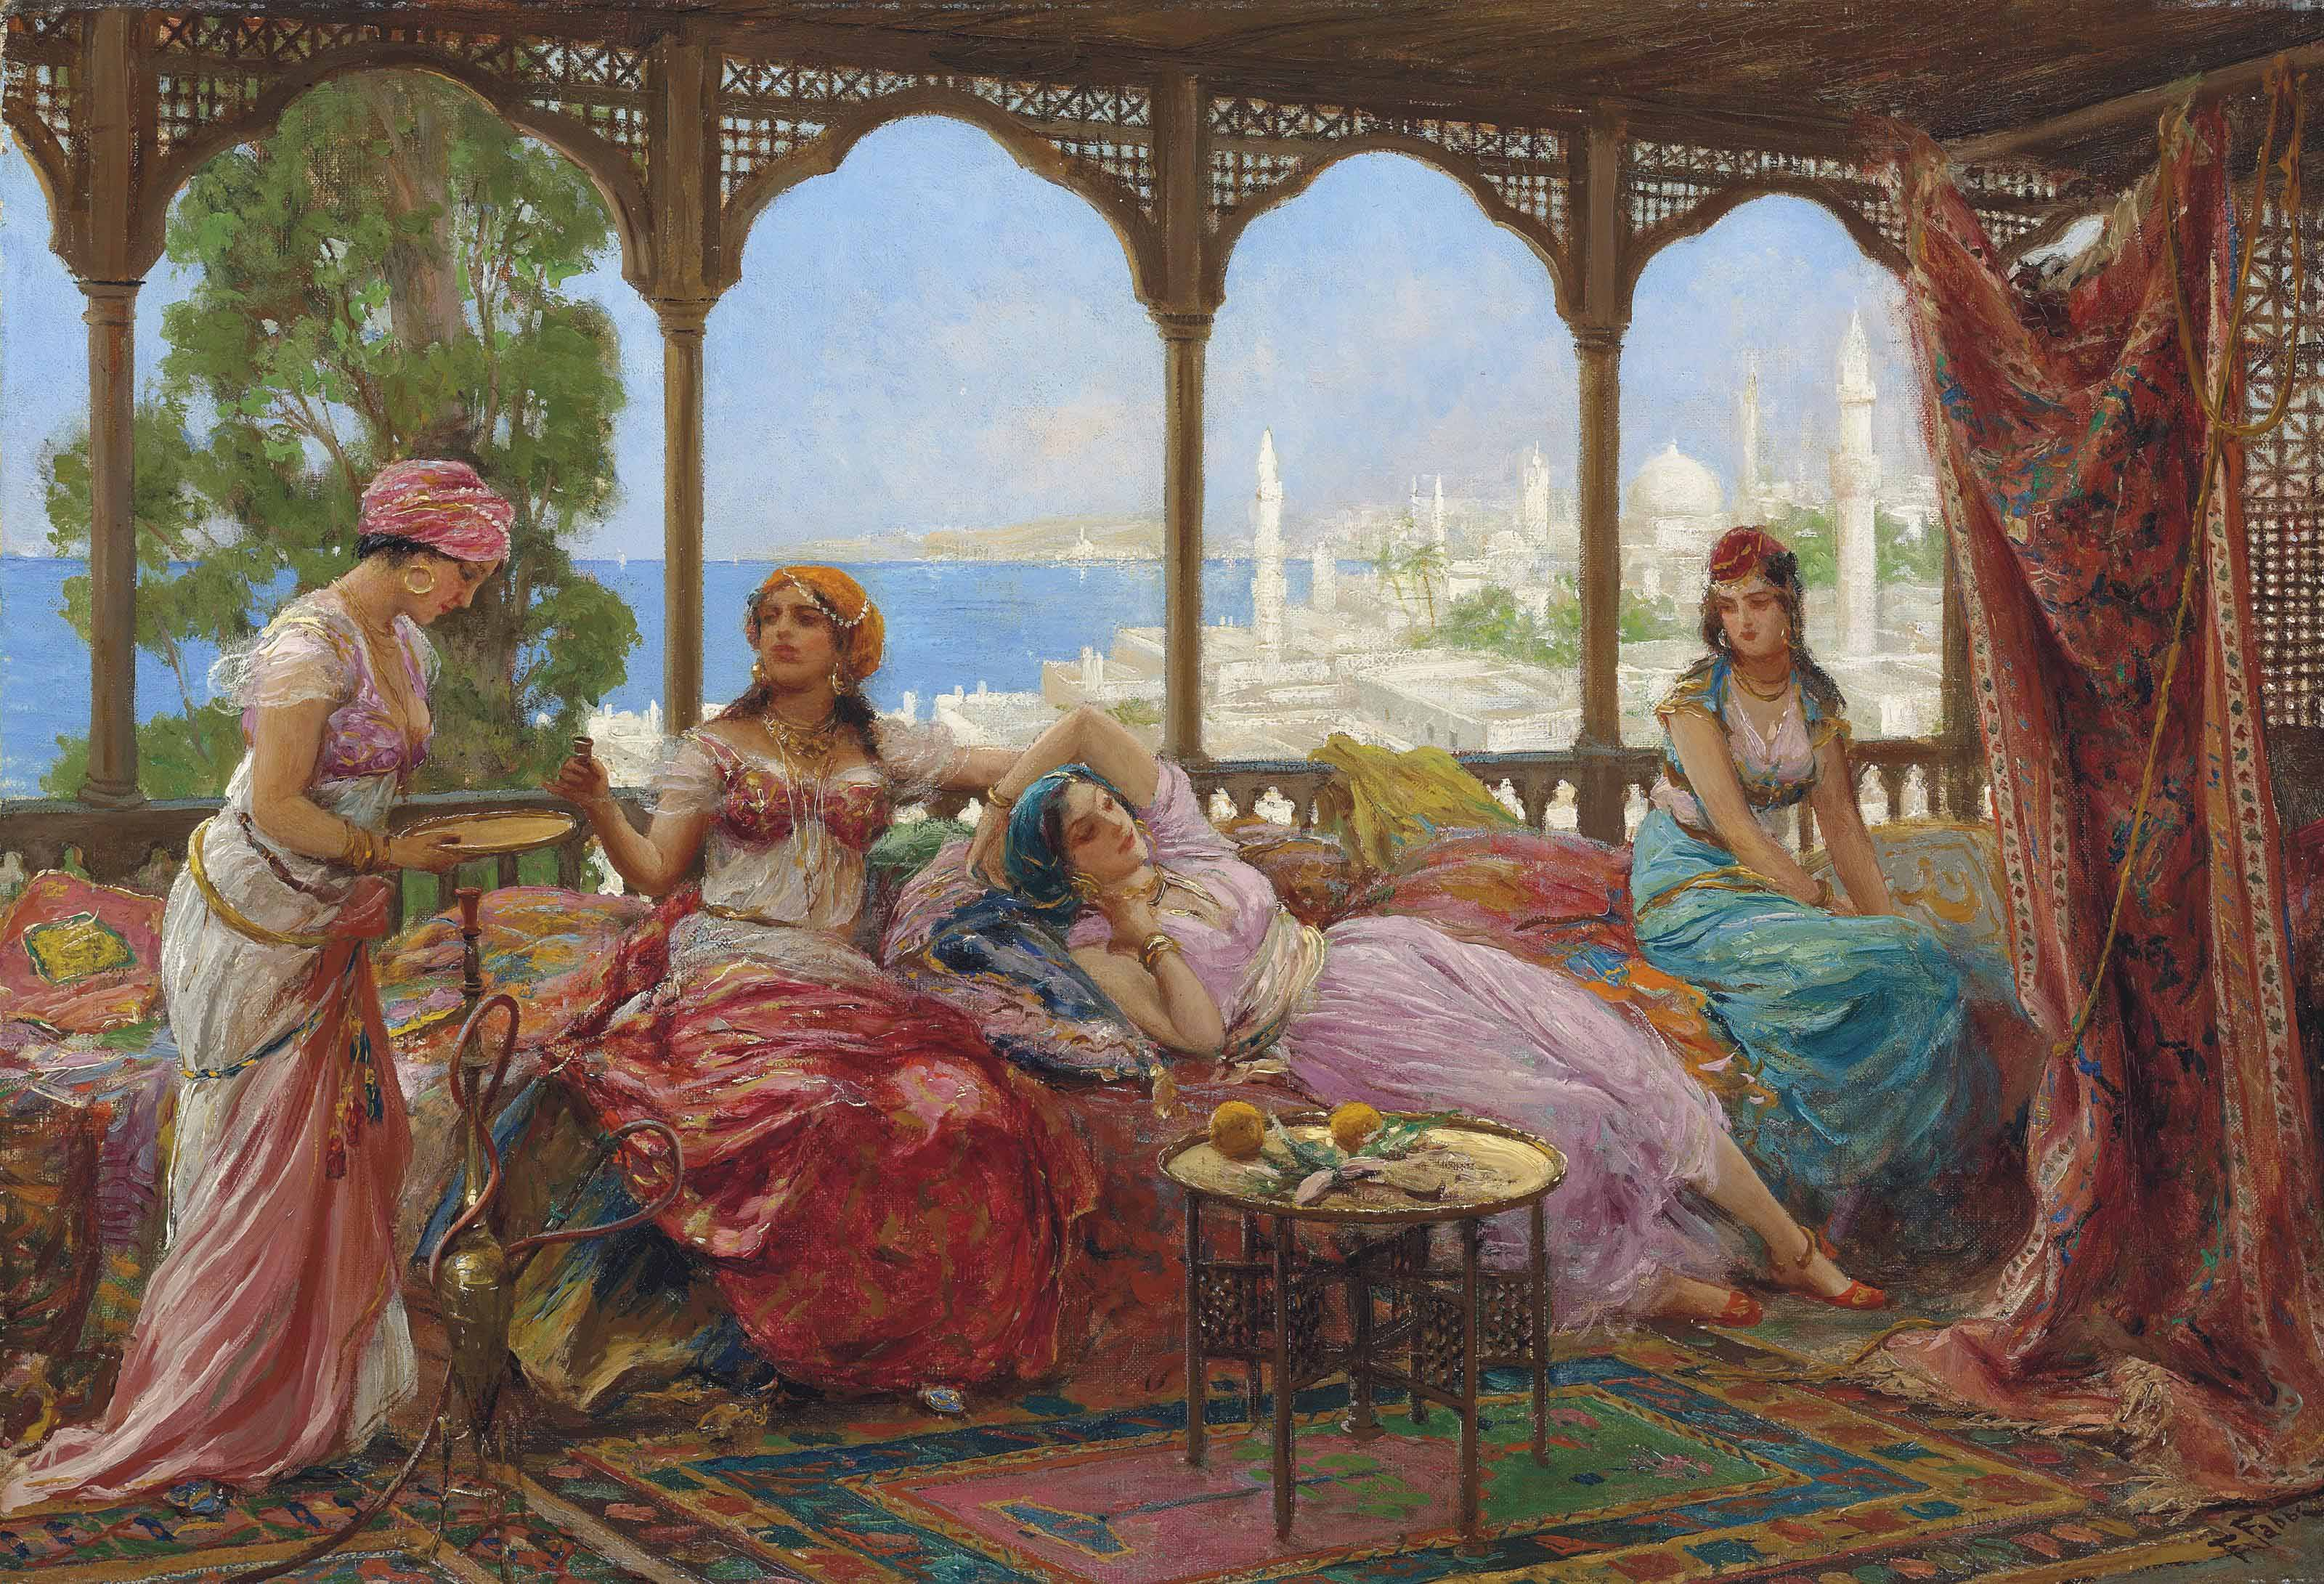 Resting on a terrace overlooking a Middle Eastern coast